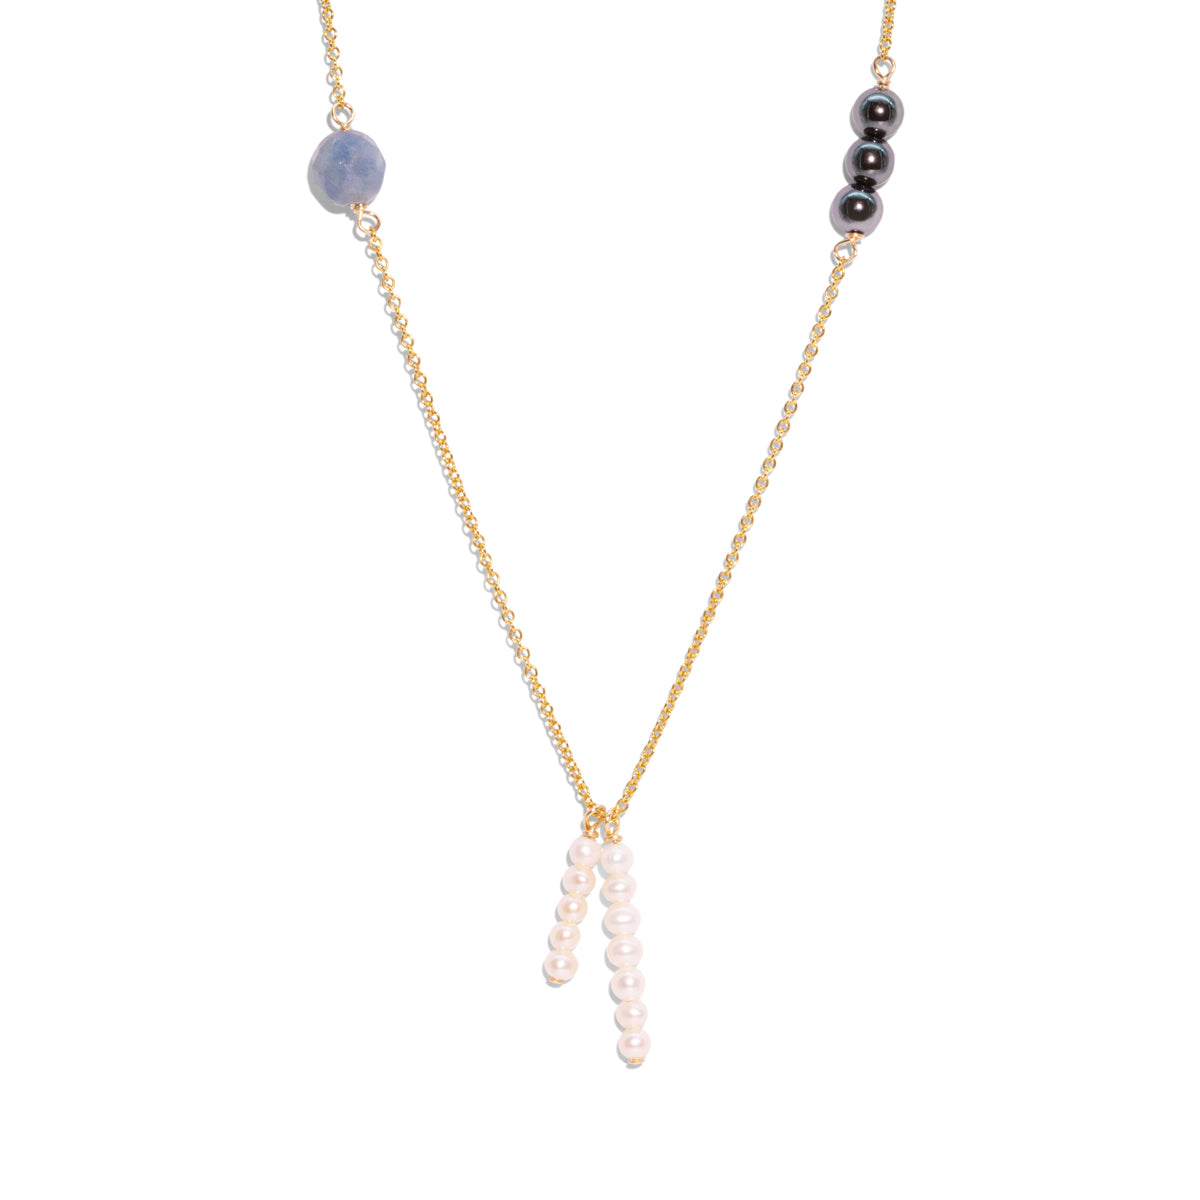 The Gold Galaxy Frost Necklace